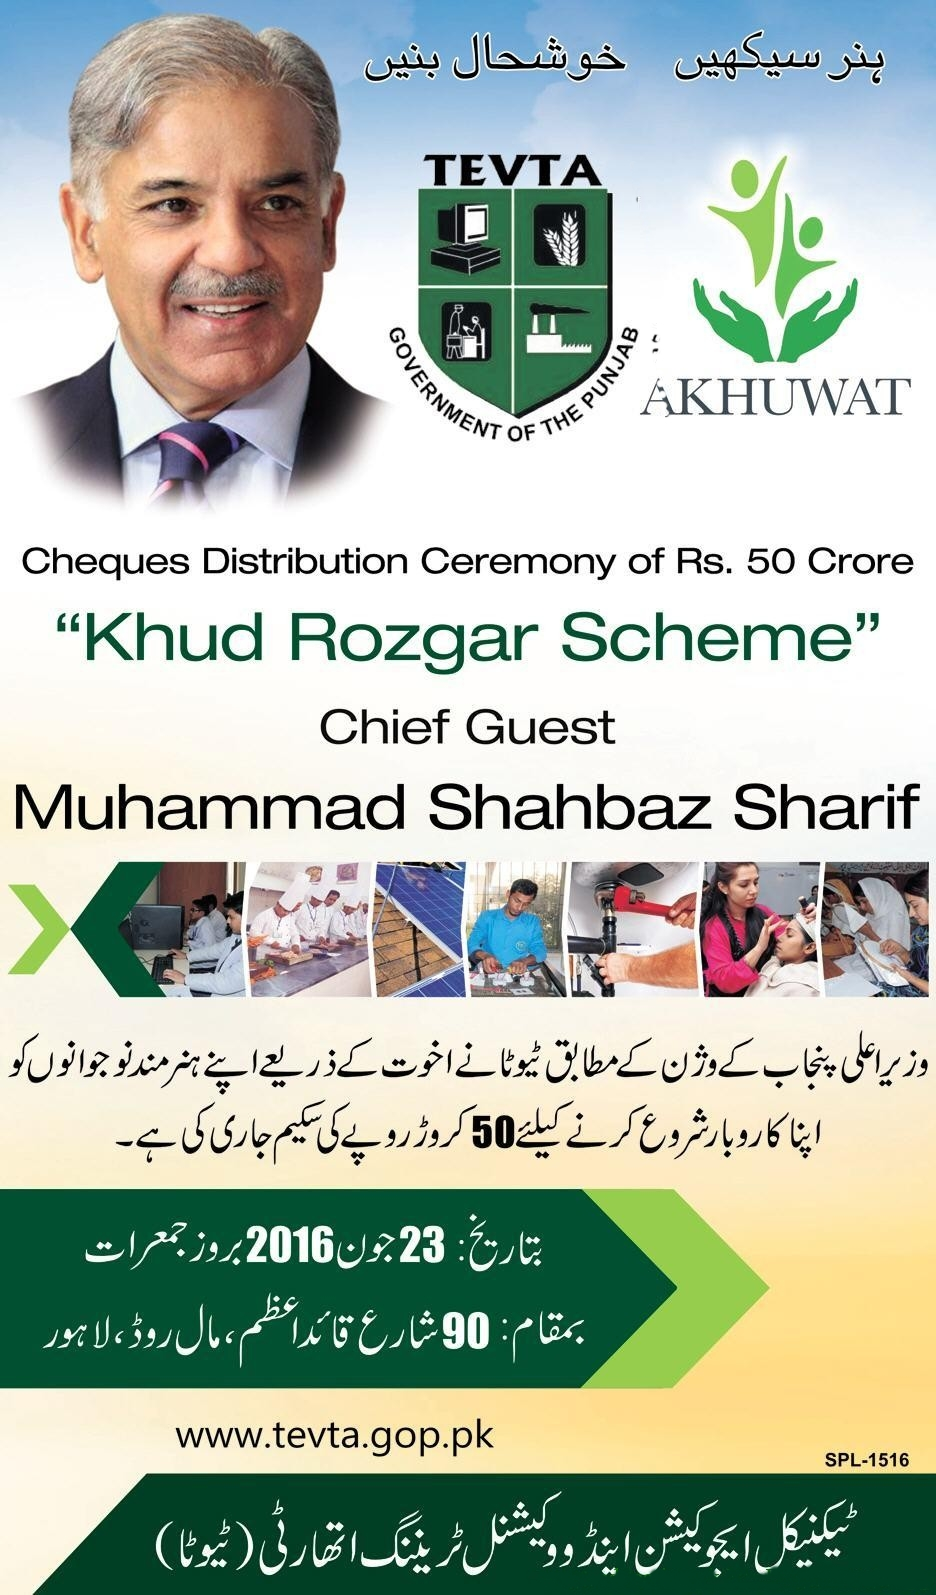 CM Punjab Apna Rozgar Scheme Draw Selected Candidates List, Names